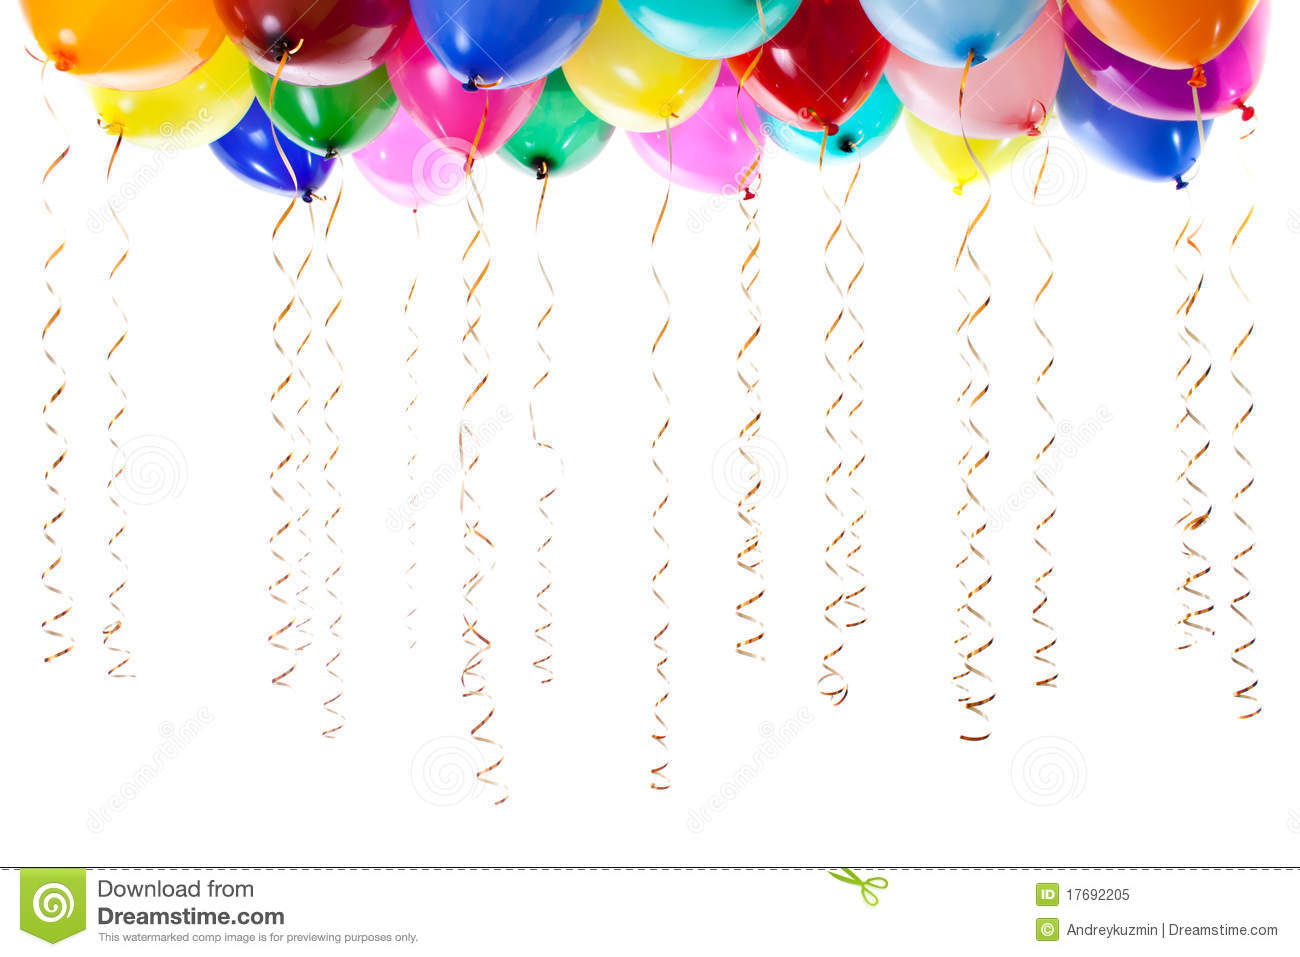 clip art free balloons and streamers - photo #13